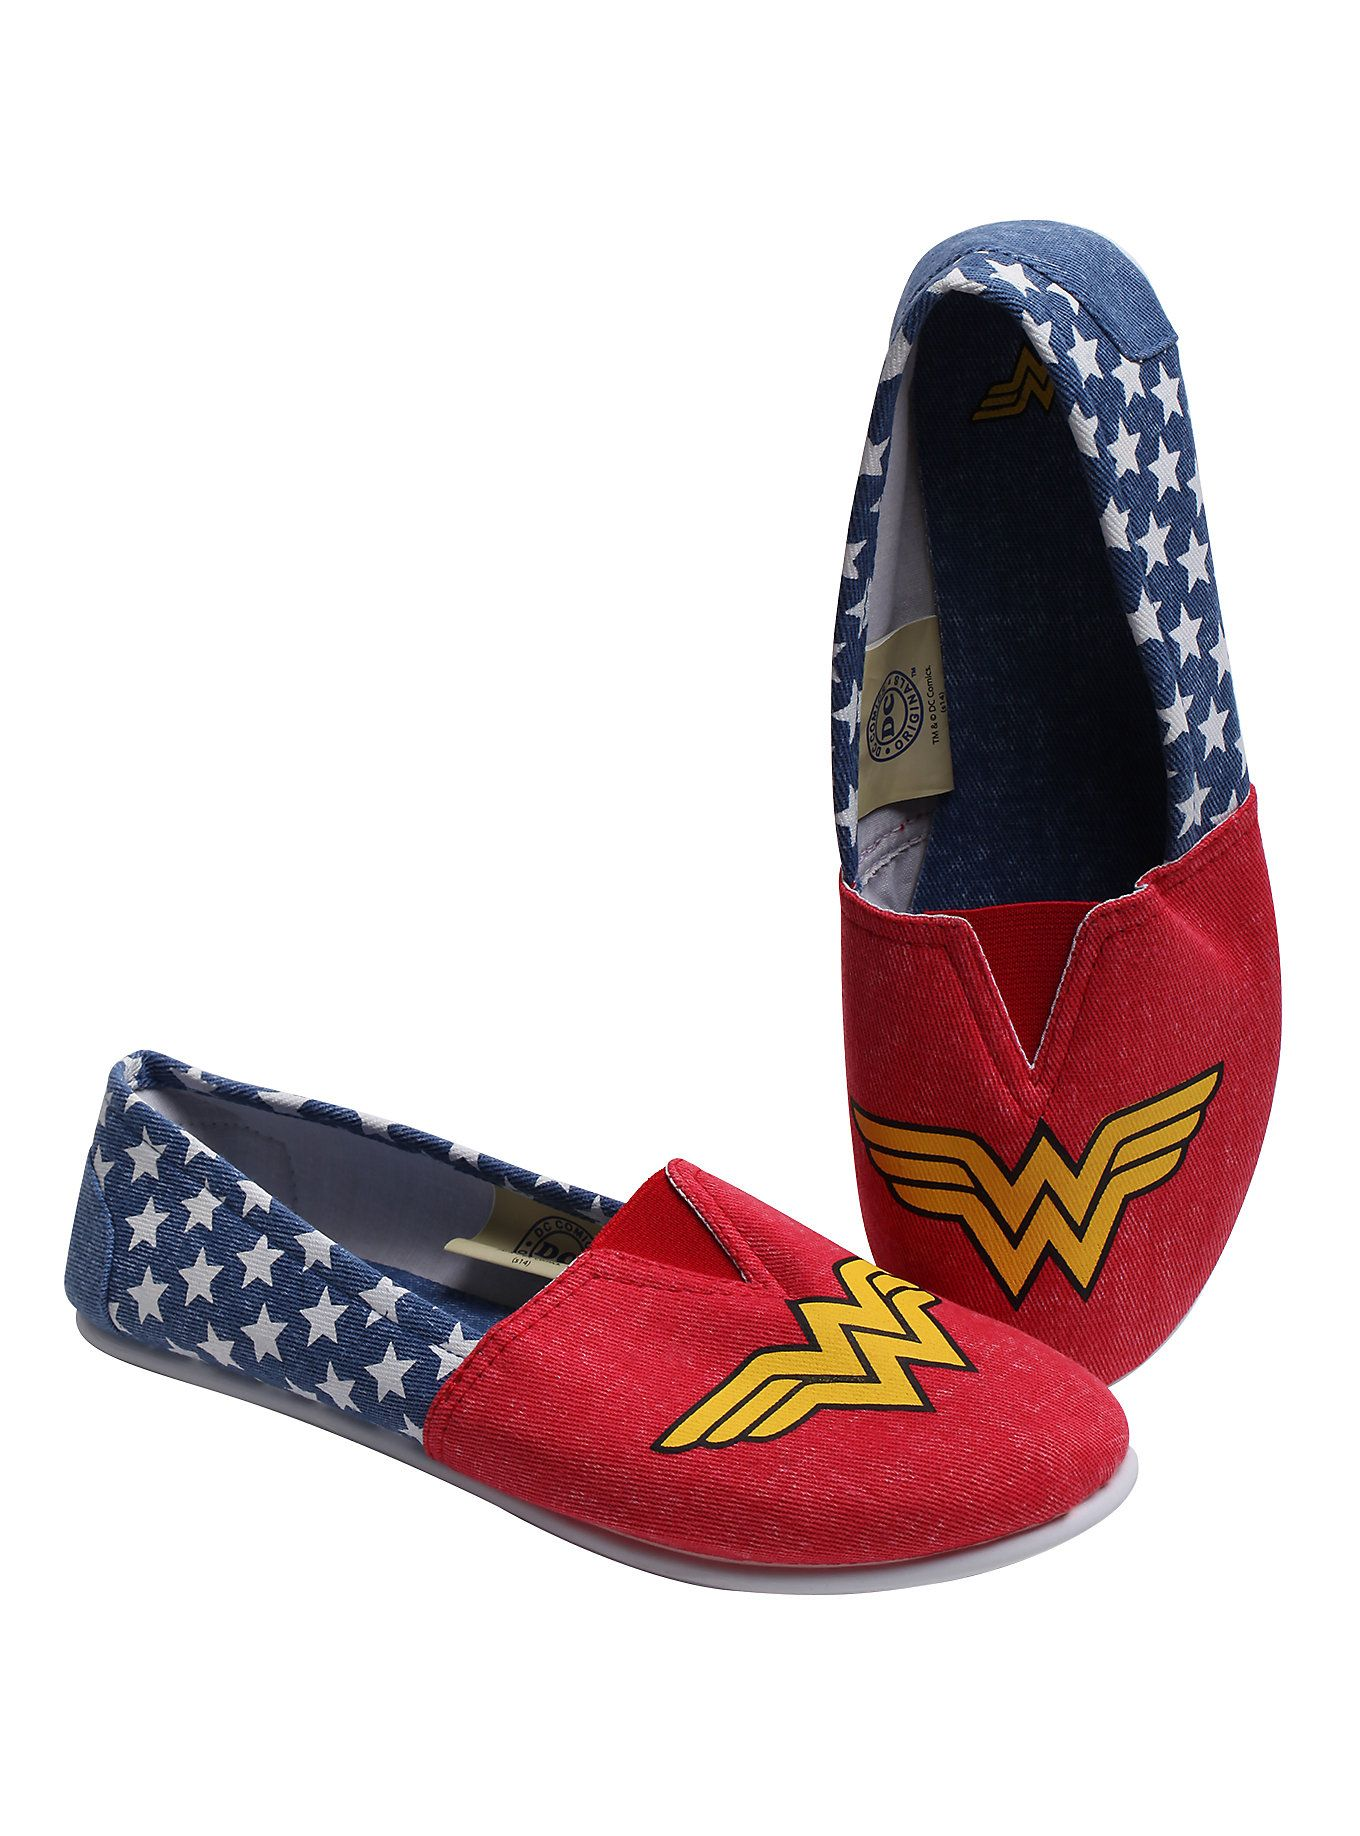 caac96f59e2c Pair of slip-on shoes from DC Comics with Wonder Woman design. BR  BR SM -  5 6 BR MD - 7 8 BR LG - 9 10 ul  li  Man-made materials  li  li Imported ...